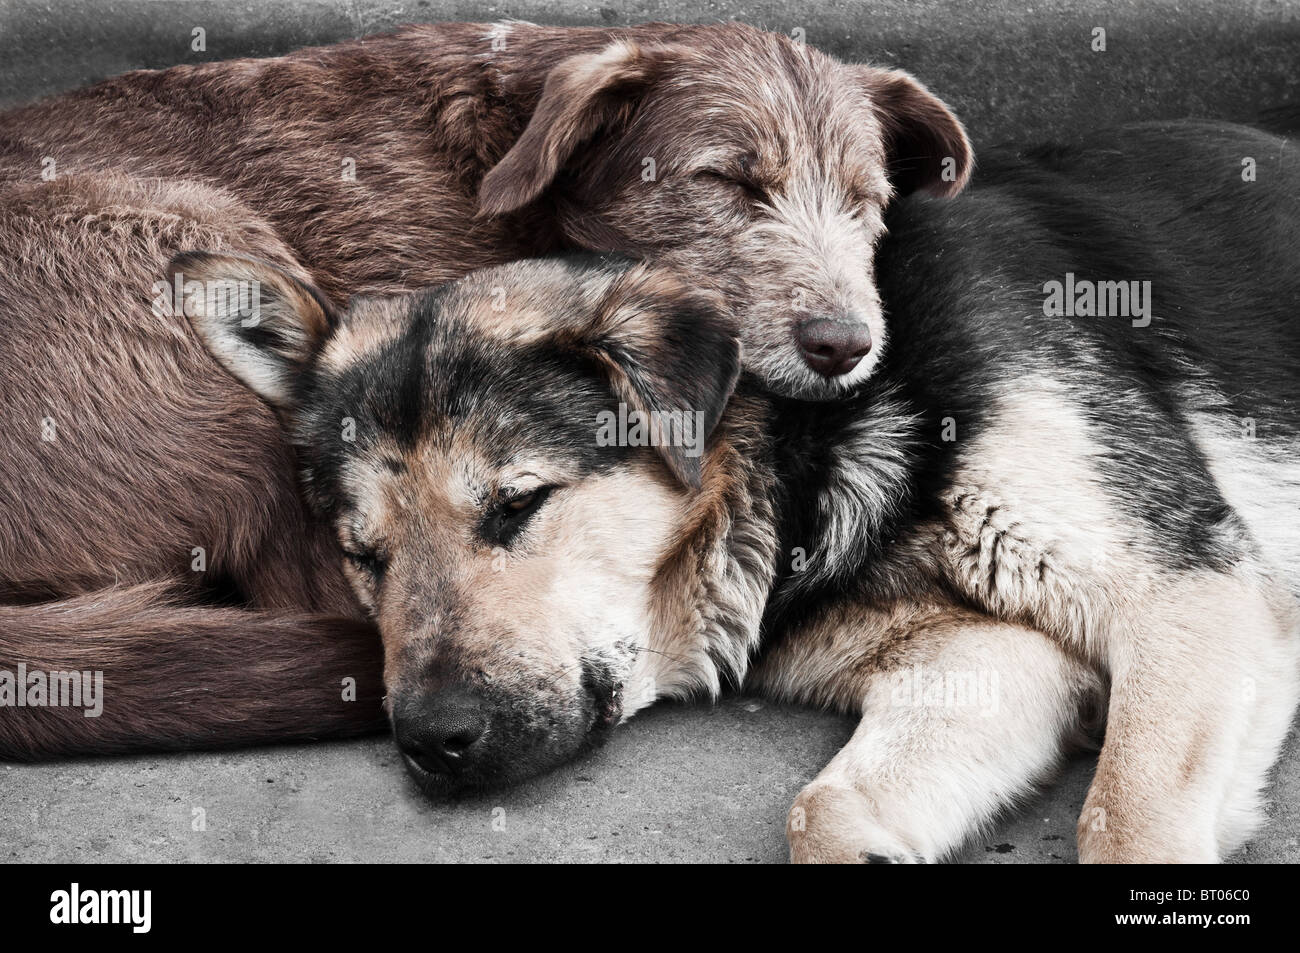 Two dogs on the street - Stock Image